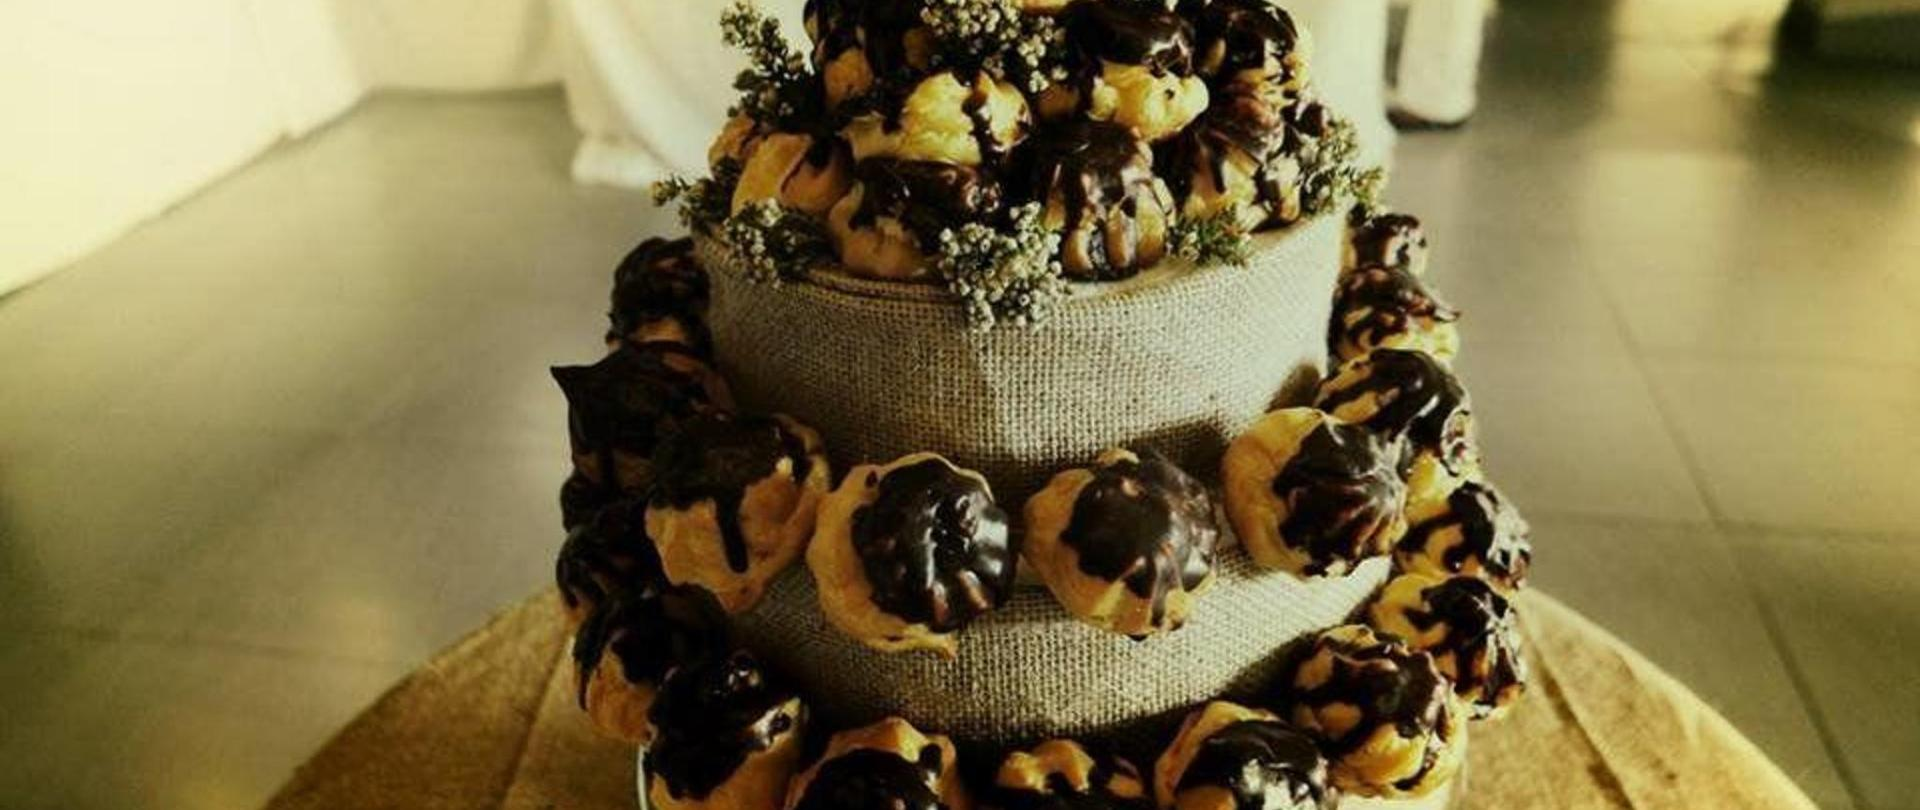 eclair-wedding-cake.jpg